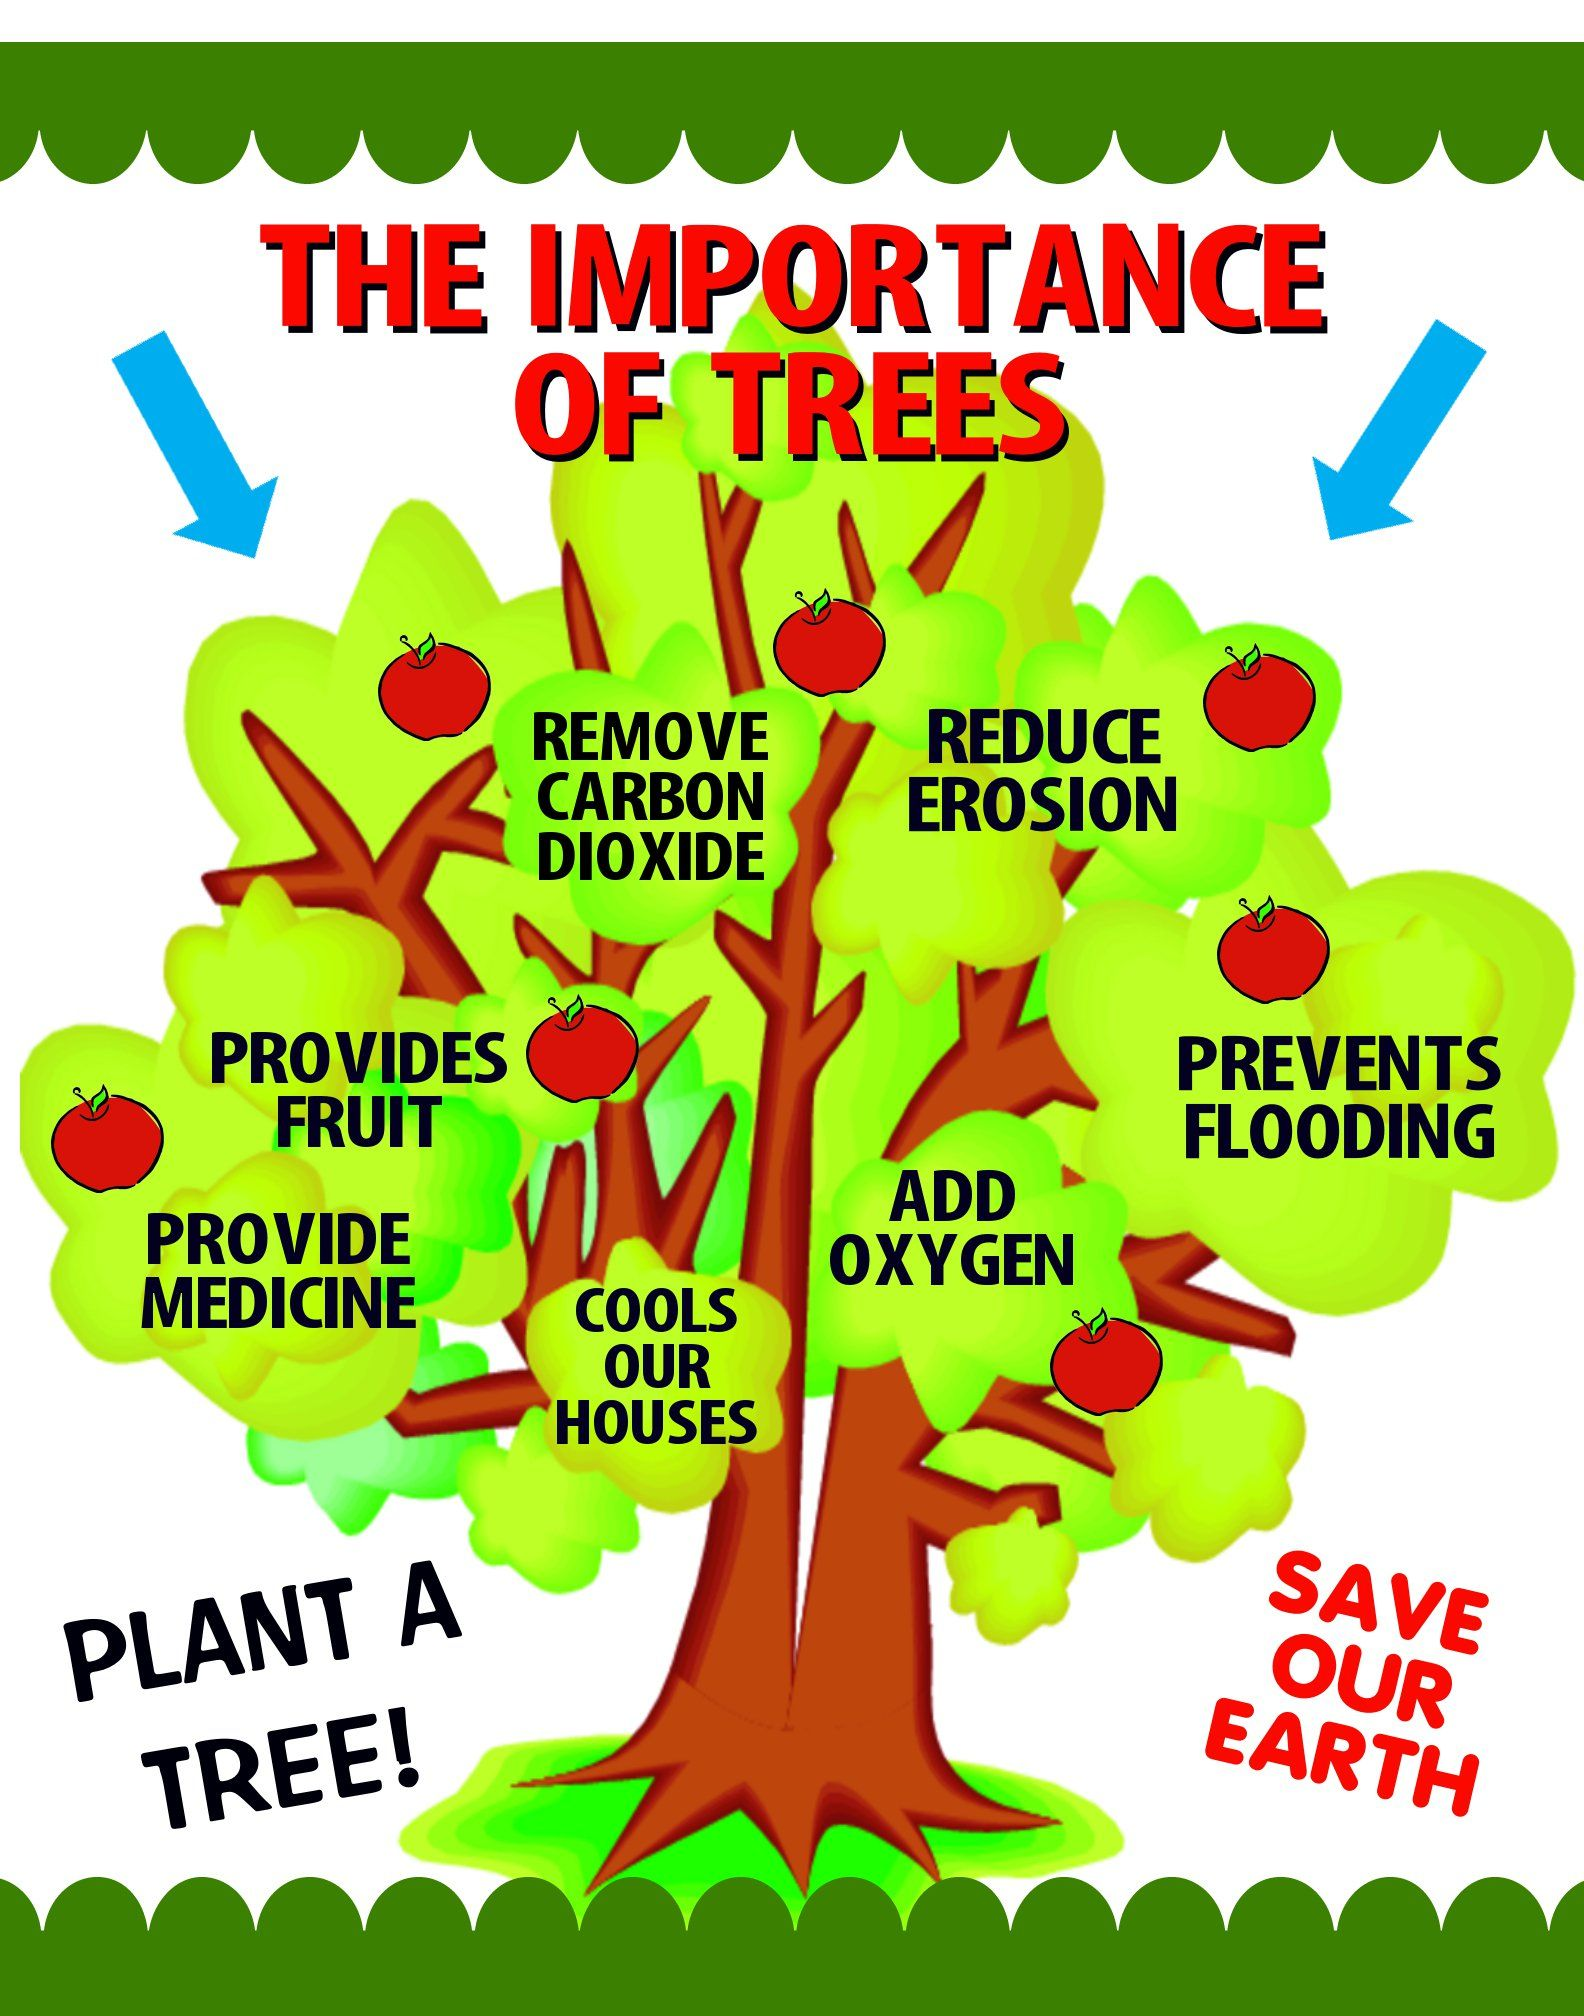 School Project Poster Design Ideas Make A Importance Of Trees Poster Arbor Day Poster Ideas